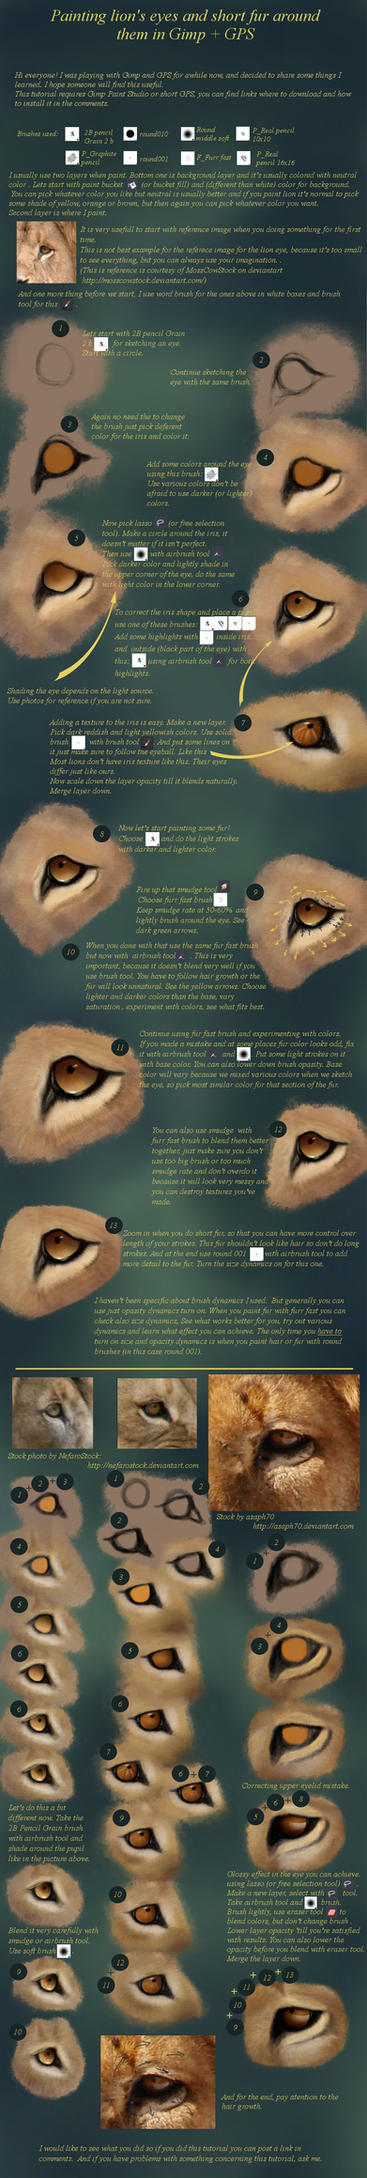 Painting lion's eye and fur... by Scheherazade2c